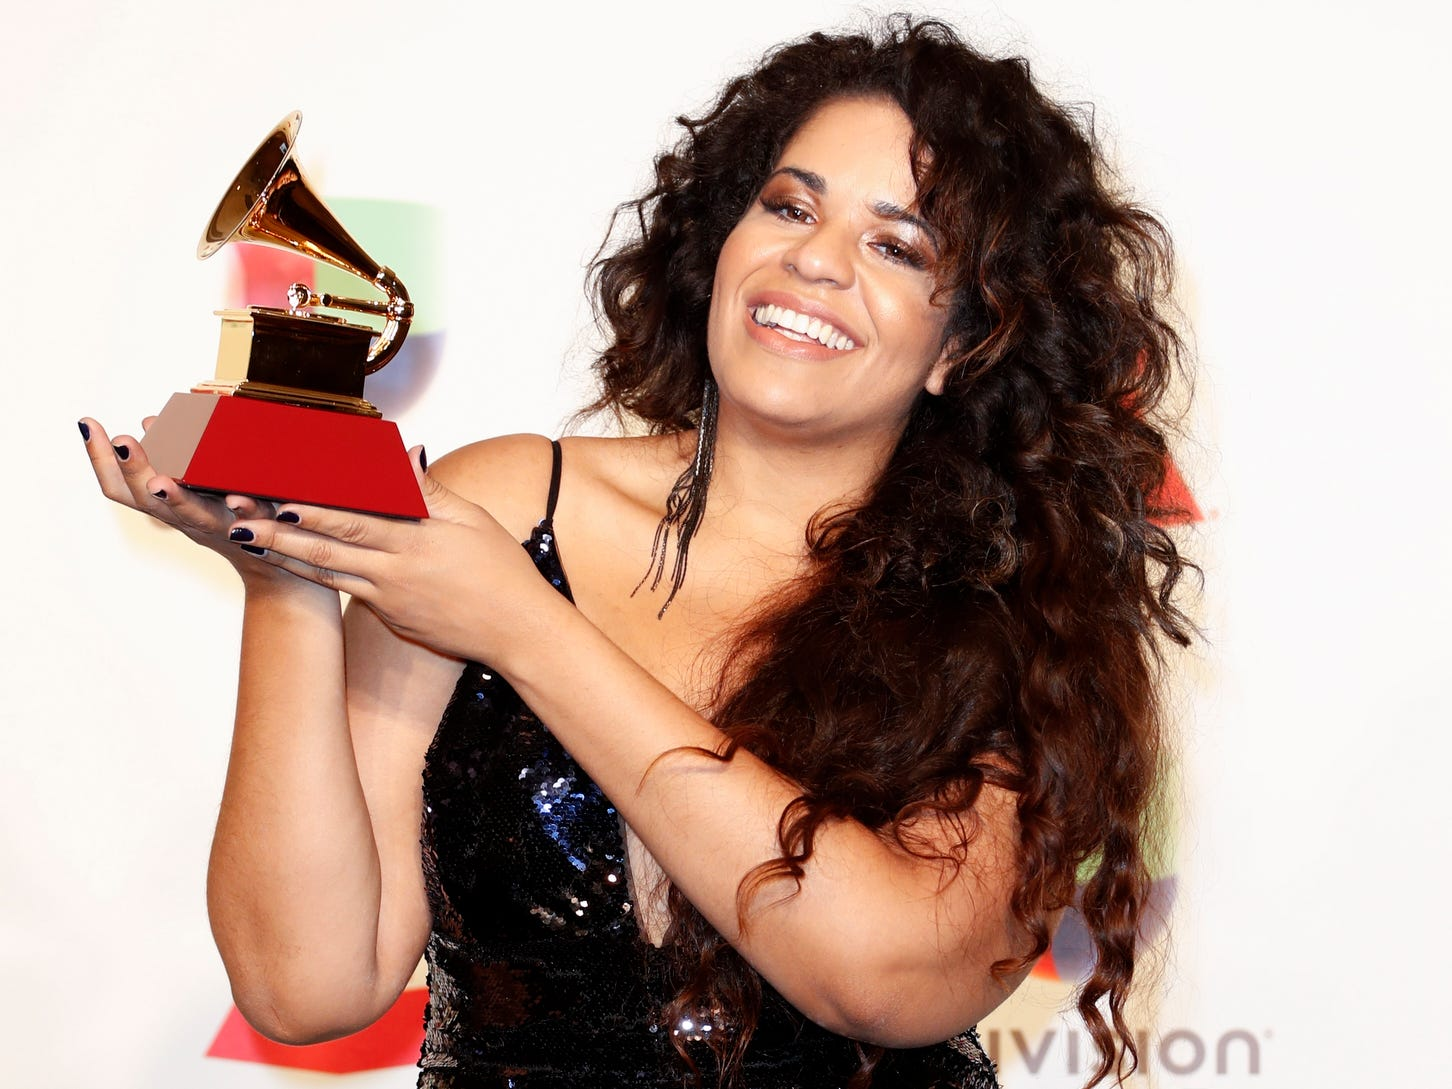 Anaadi holds the award for Best Contemporary Pop Album (Portuguese Language) in the press room during the 19th Annual Latin Grammy Awards ceremony at the MGM Grand Garden Arena in Las Vegas.